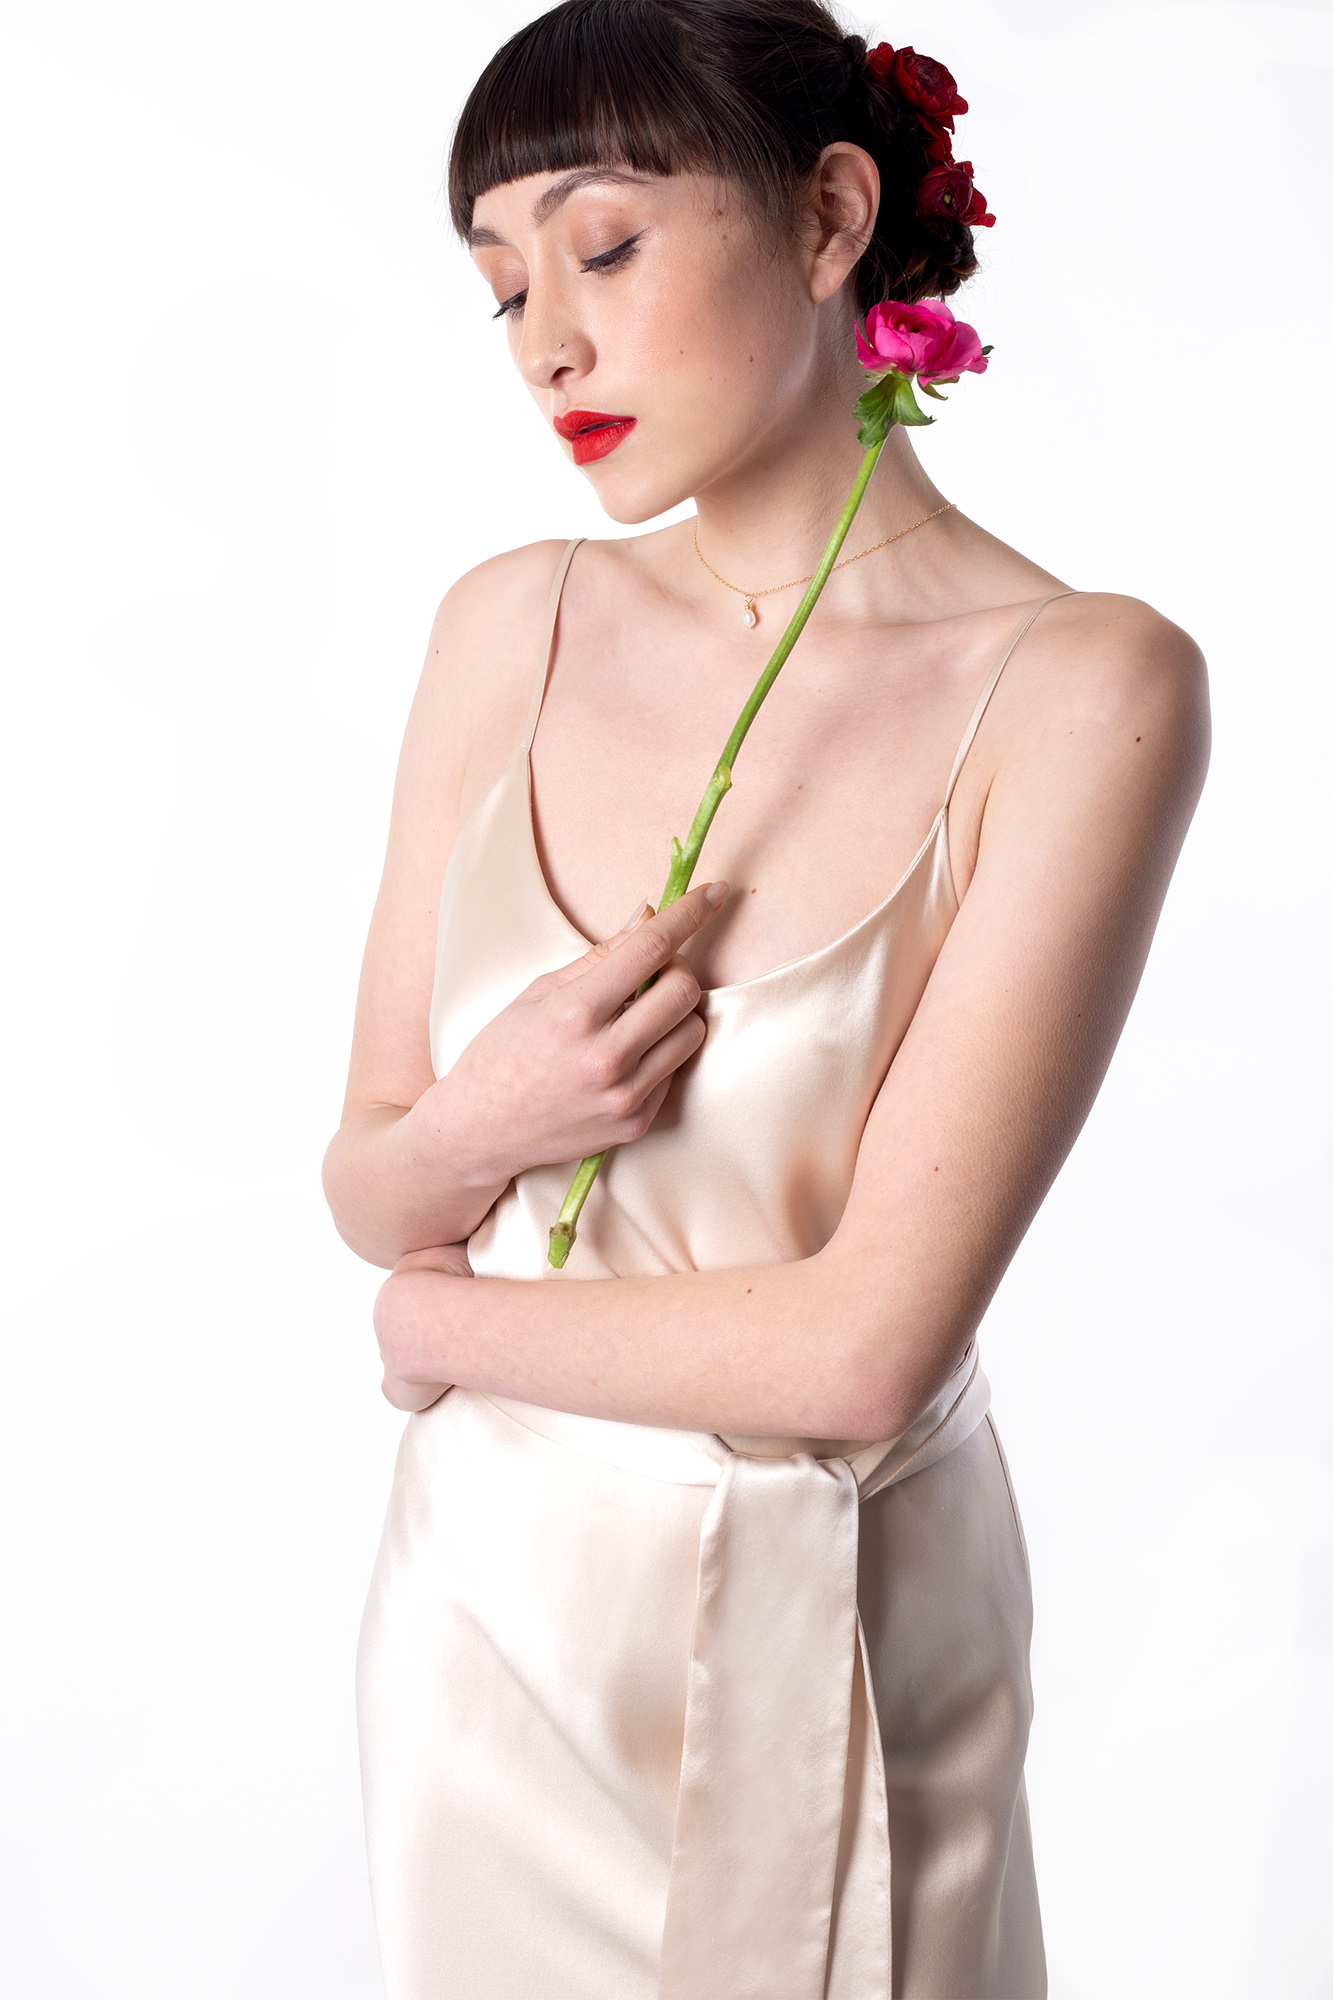 Modern Mexica colourful Oaxaca flower and Frida kahlo inspired untraditional wedding styled shoot - silk slip dress by Belle and Bunty